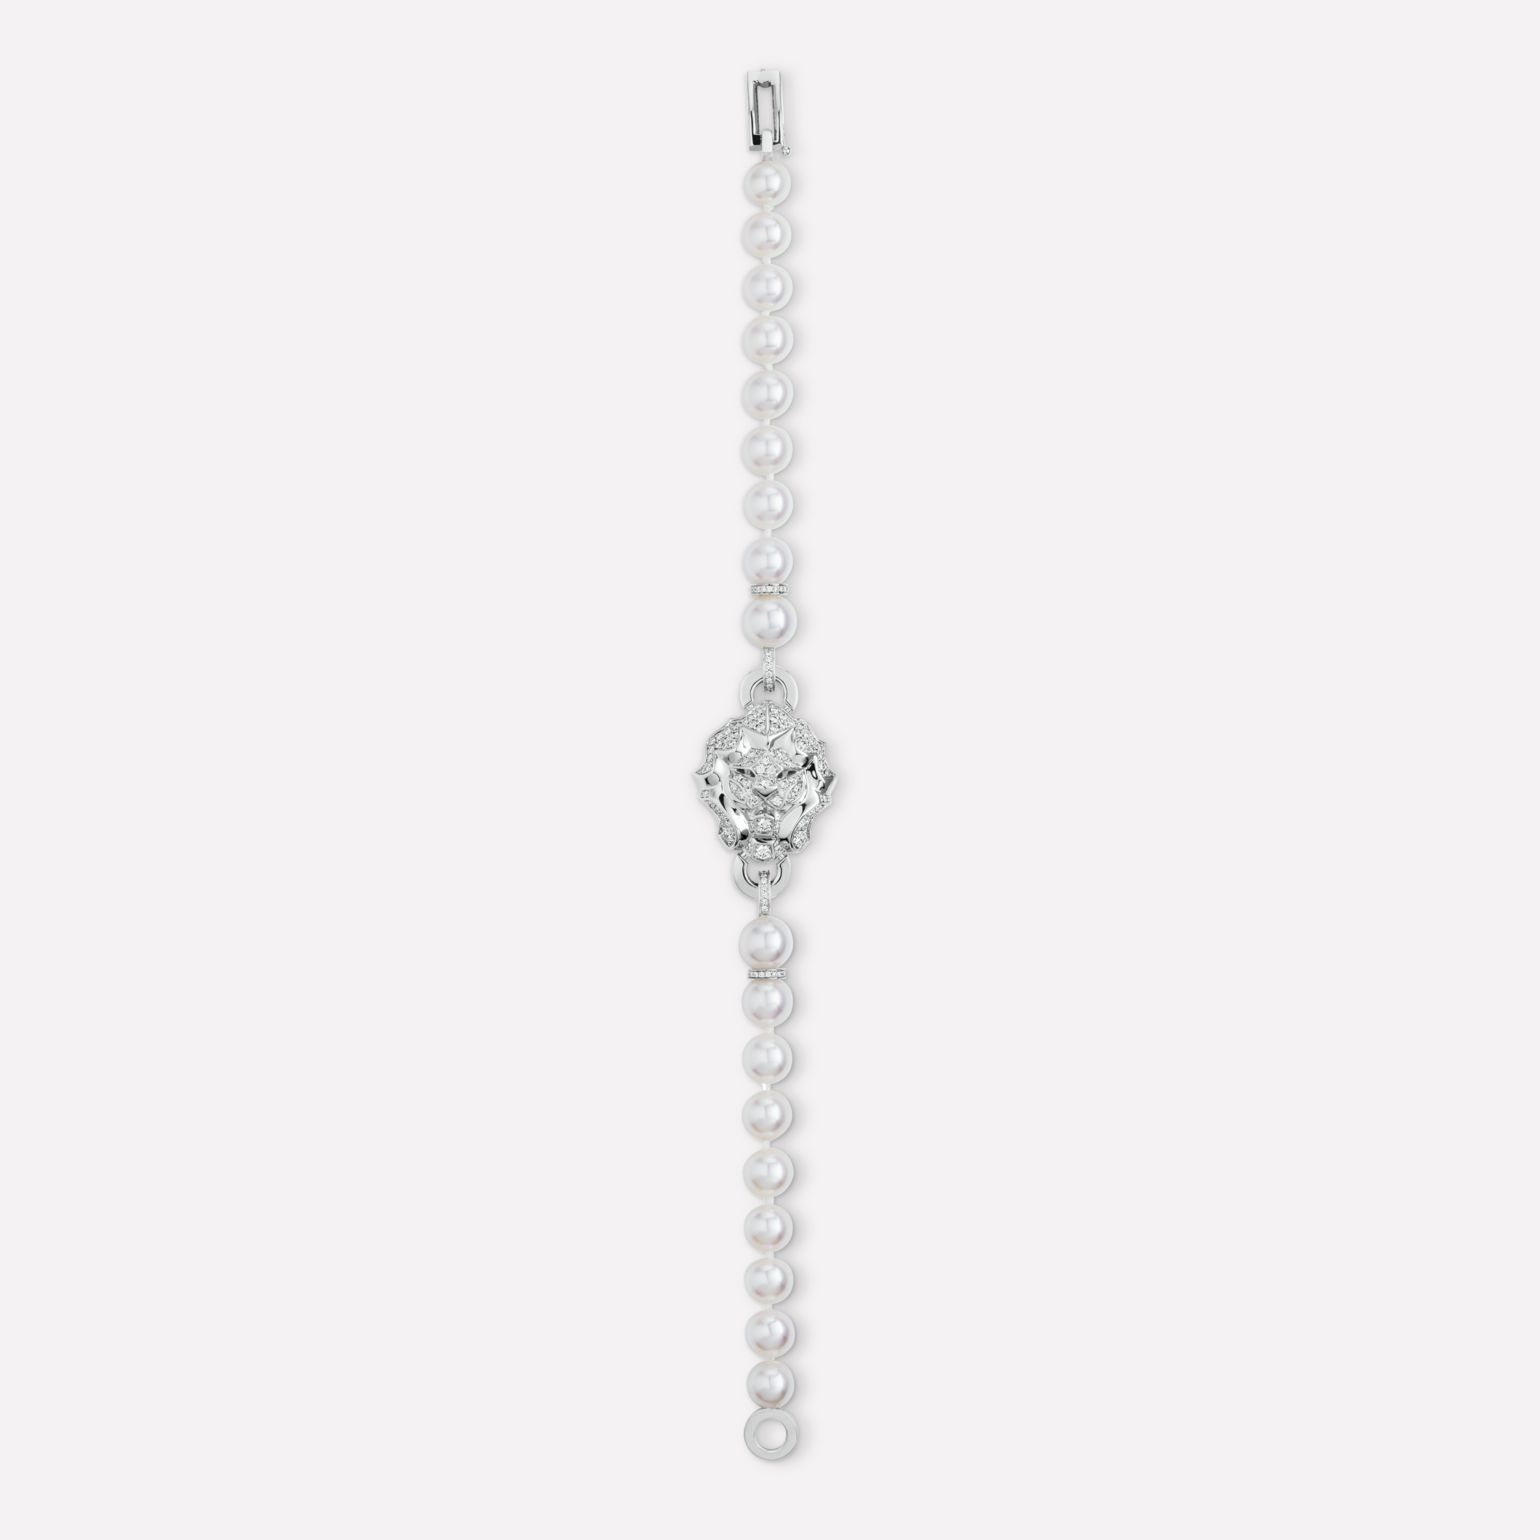 Sous le Signe du Lion Bracelet Lion bracelet in 18K white gold, diamonds and cultured pearls